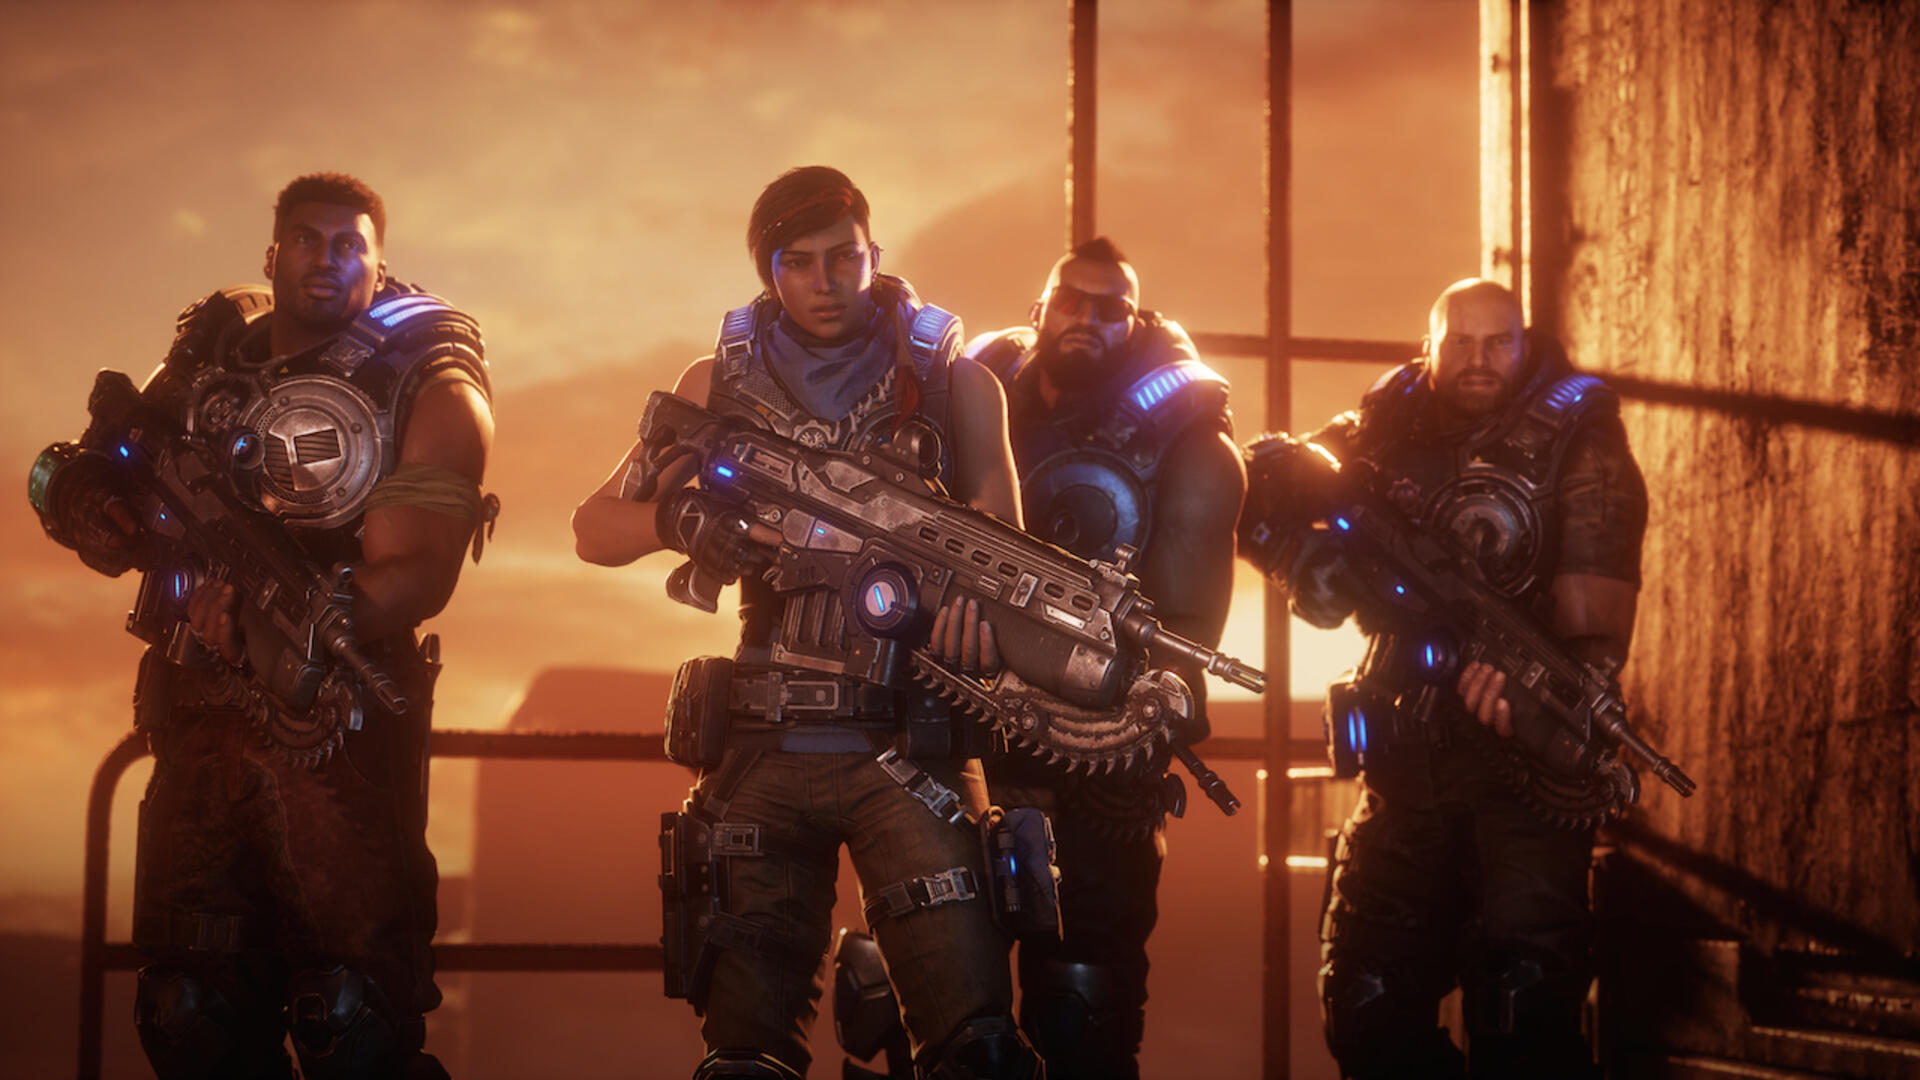 A Gears 5 Glitch Gives Players a Glimpse of What It'd Be Like as an FPS